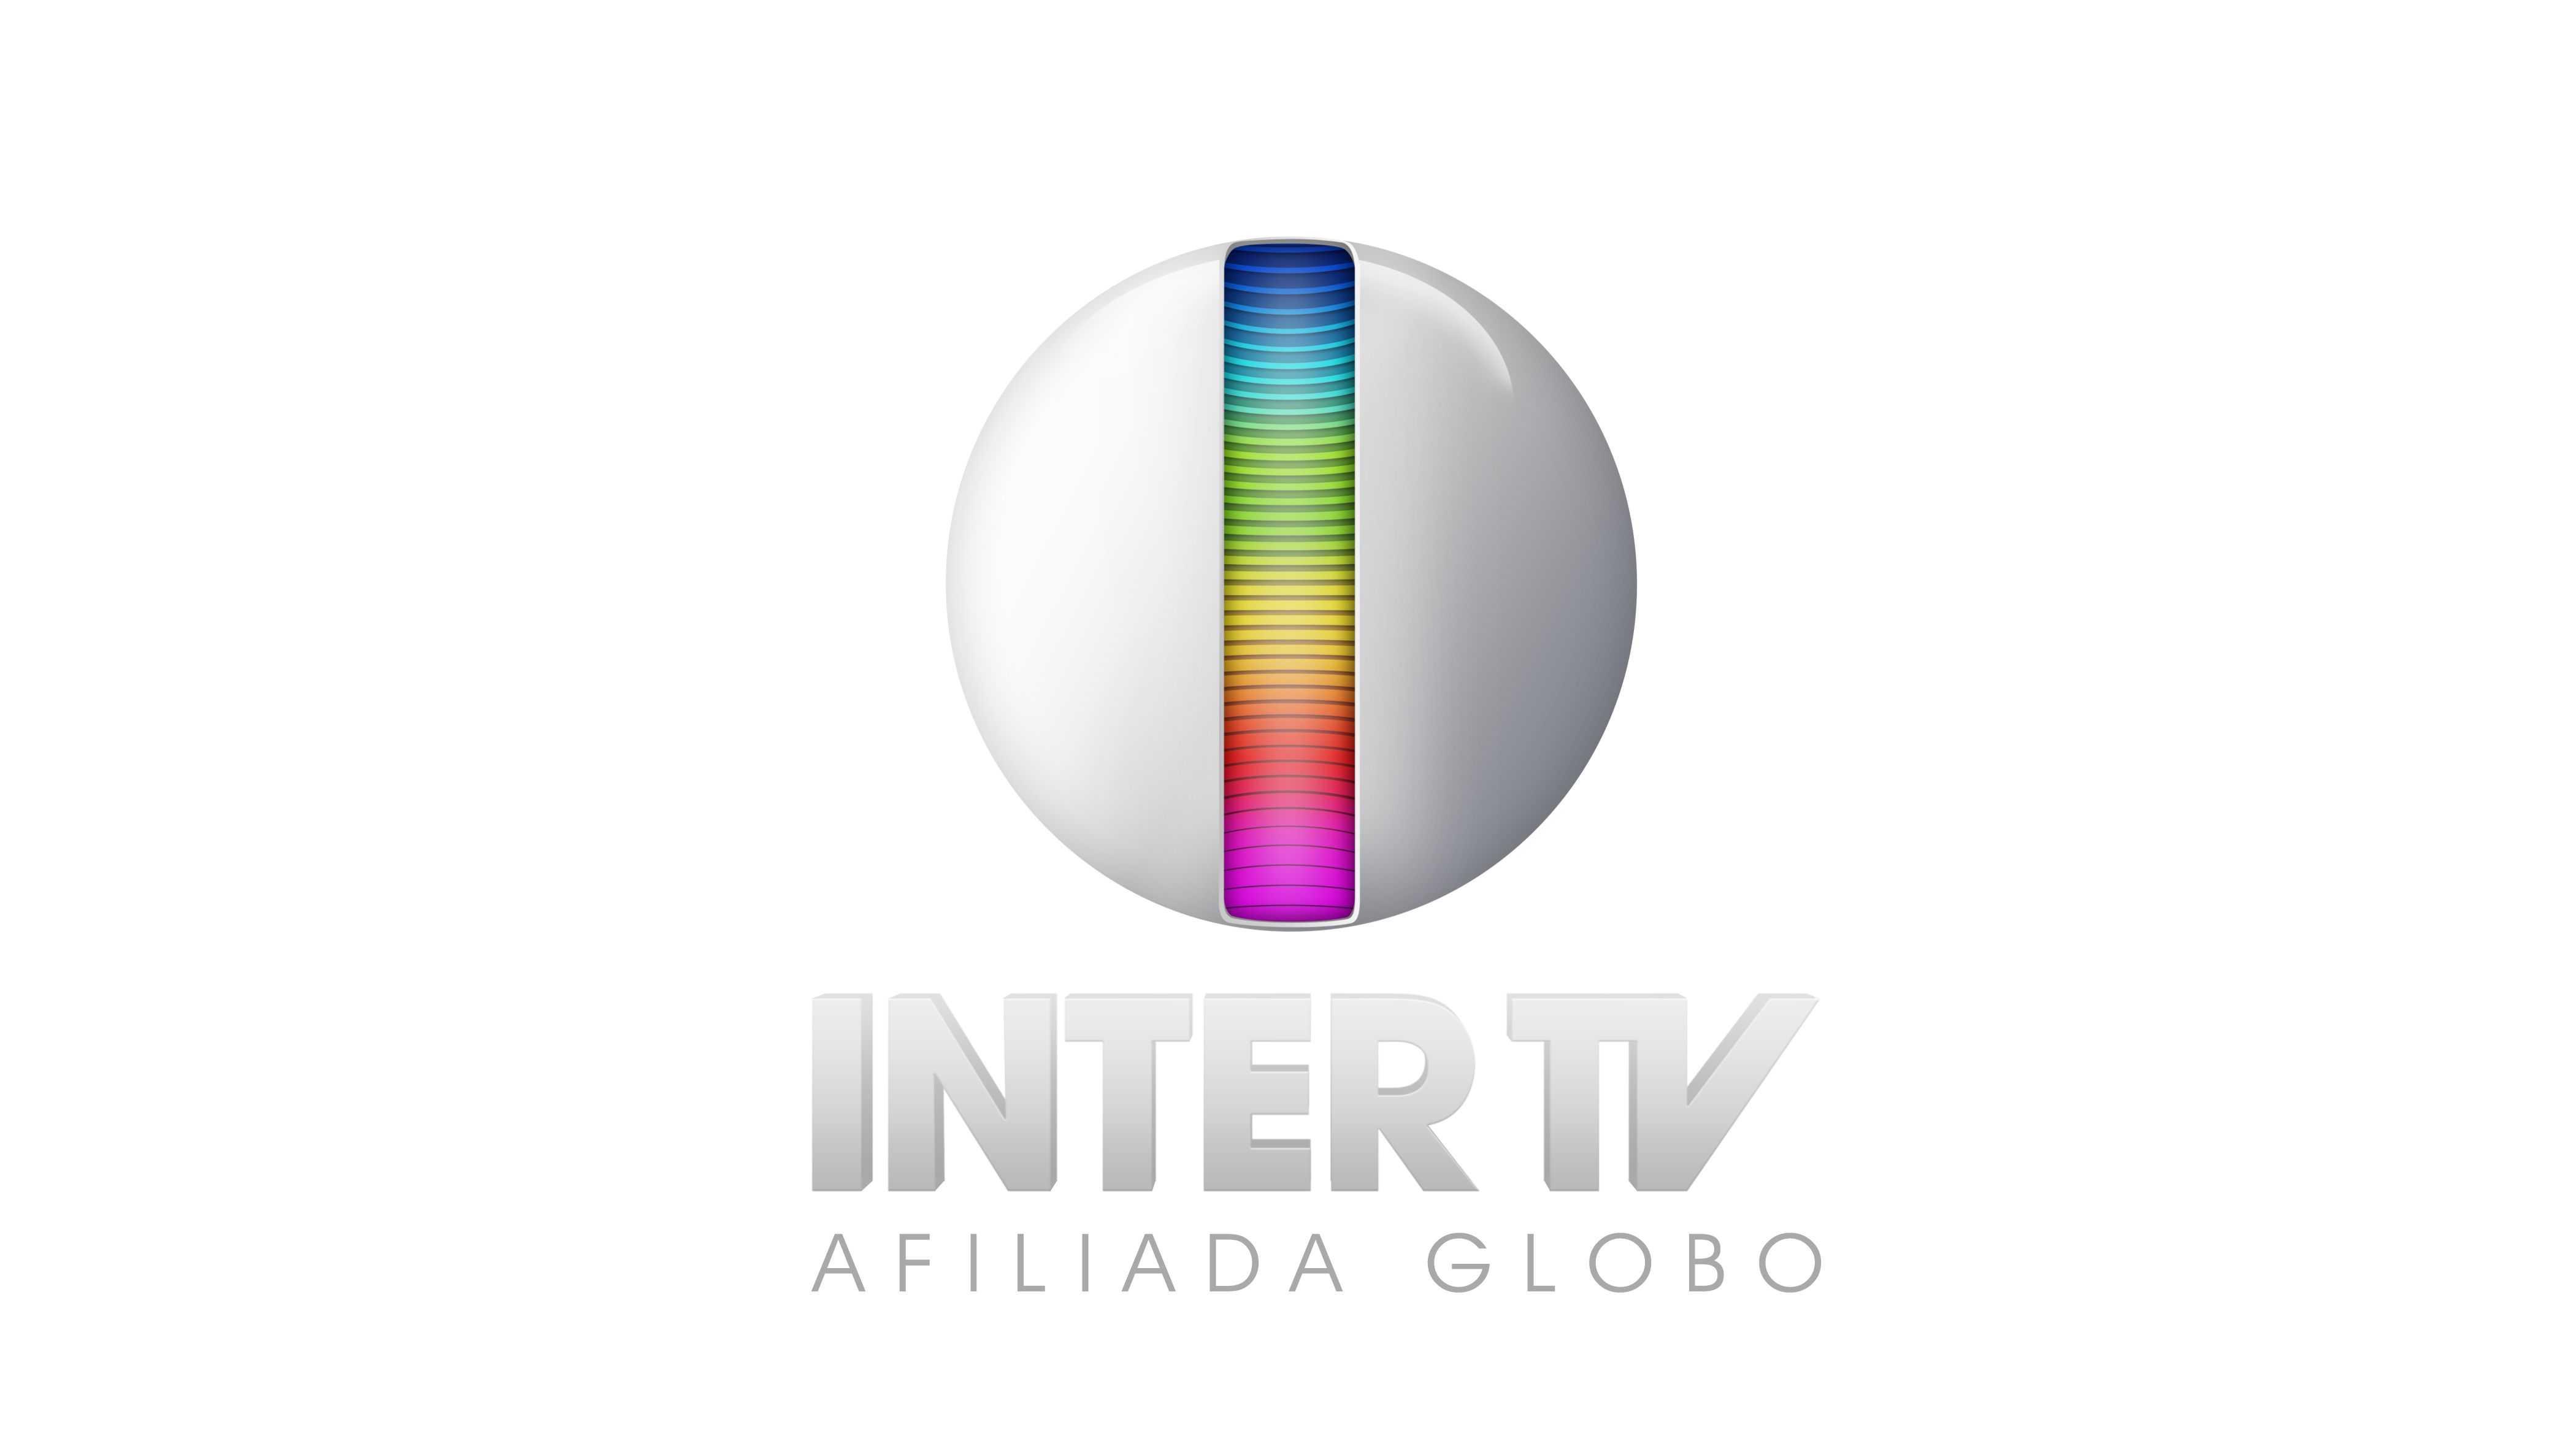 Logotipo InterTV Cabugi